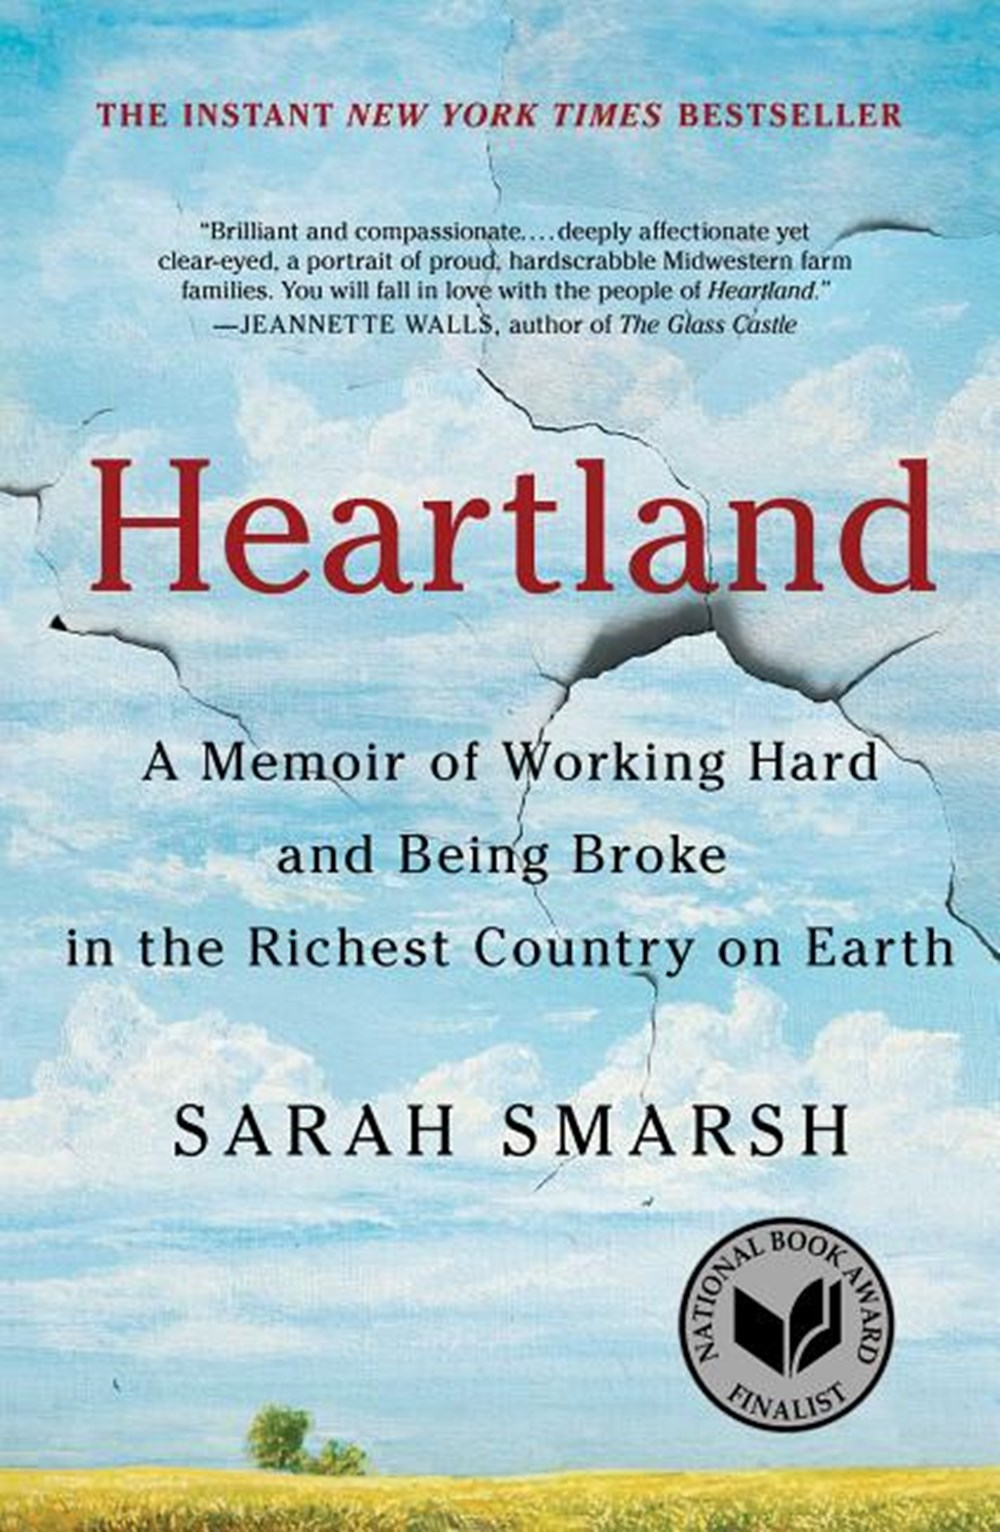 Heartland A Memoir of Working Hard and Being Broke in the Richest Country on Earth